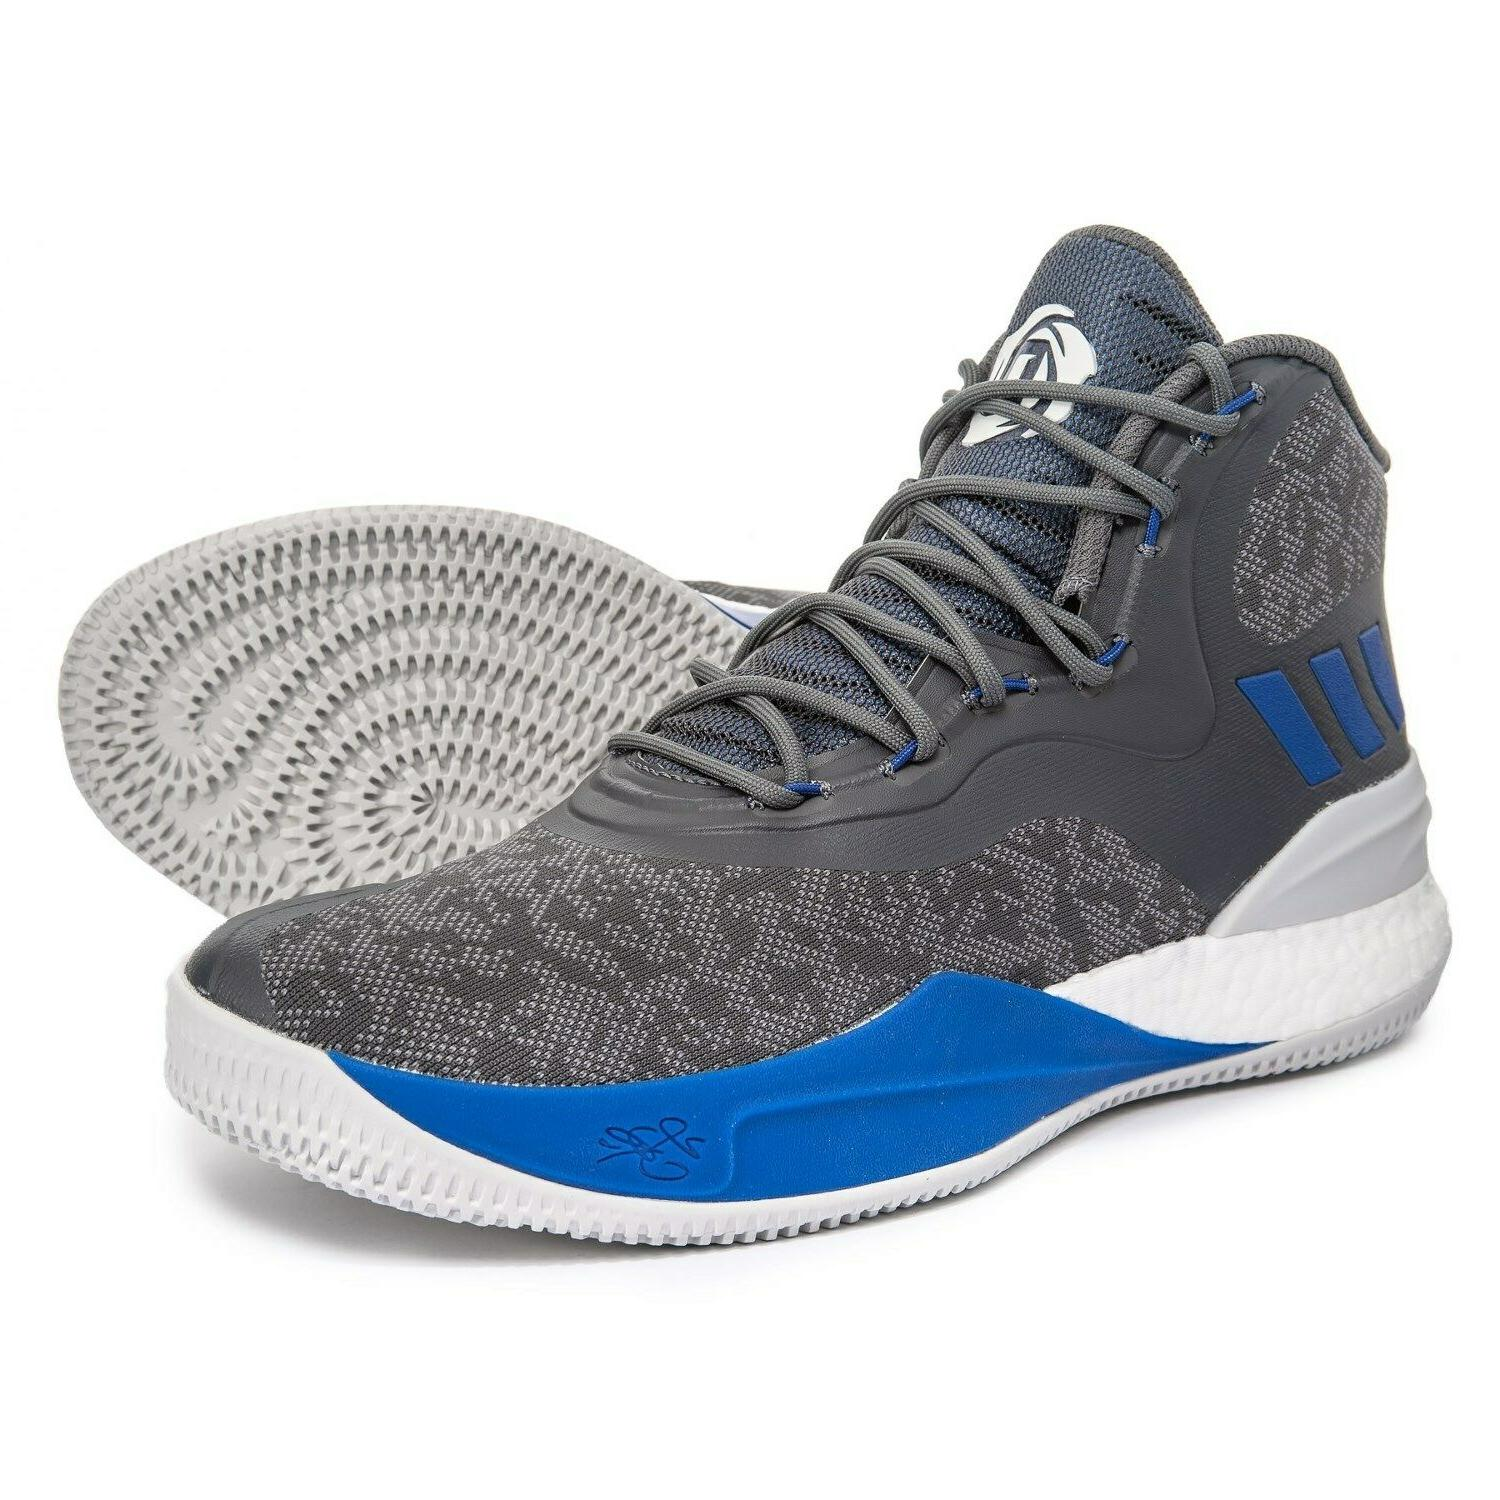 new men s d rose 8 basketball